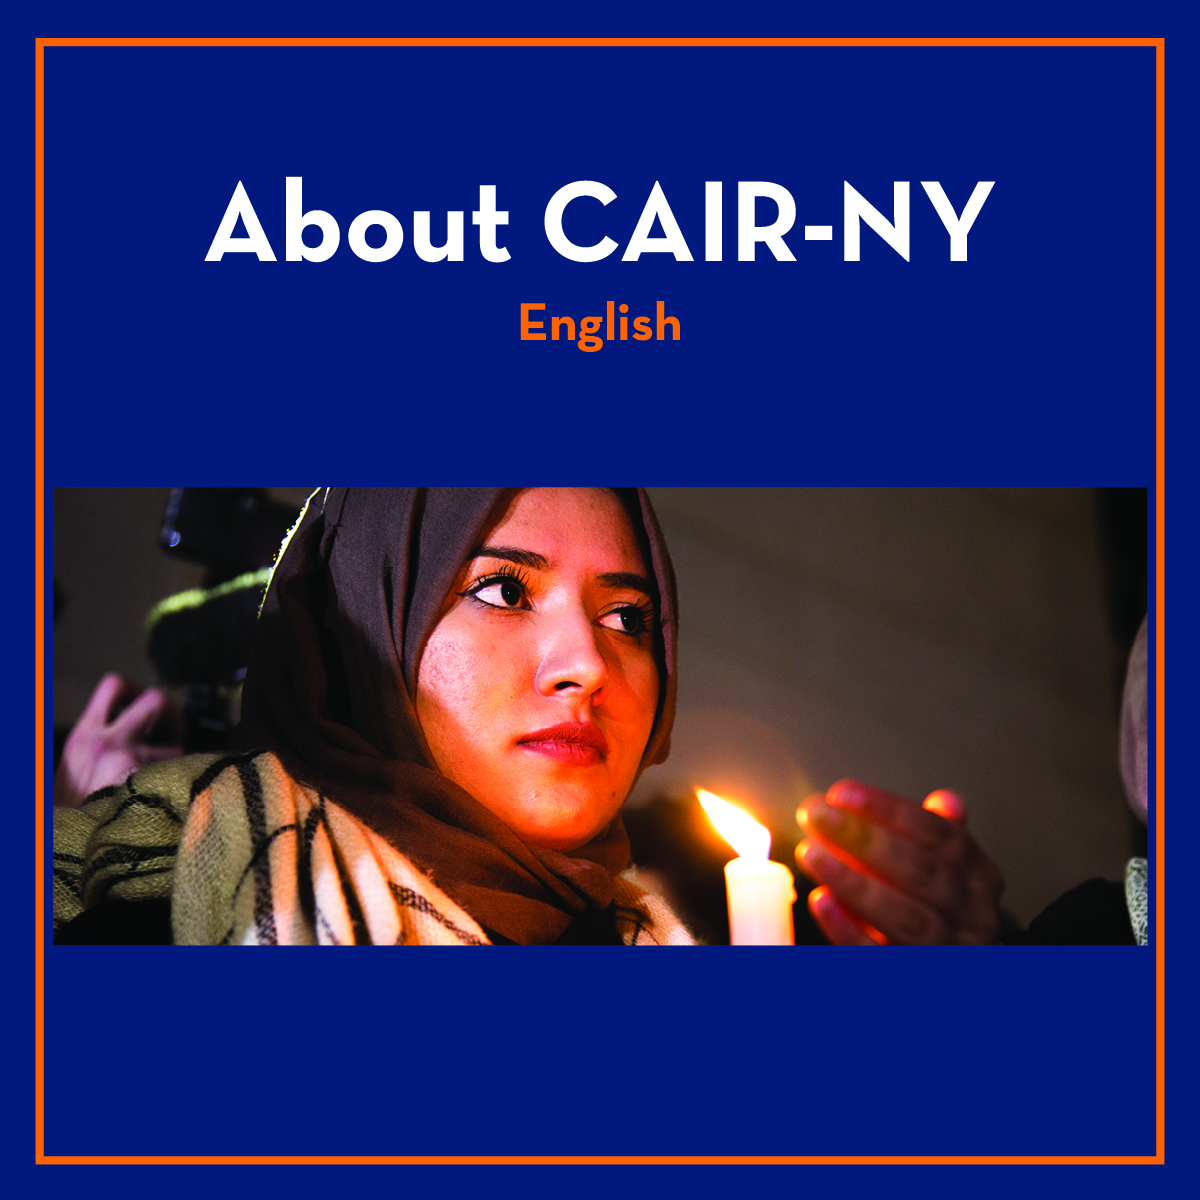 About CAIR English.jpg